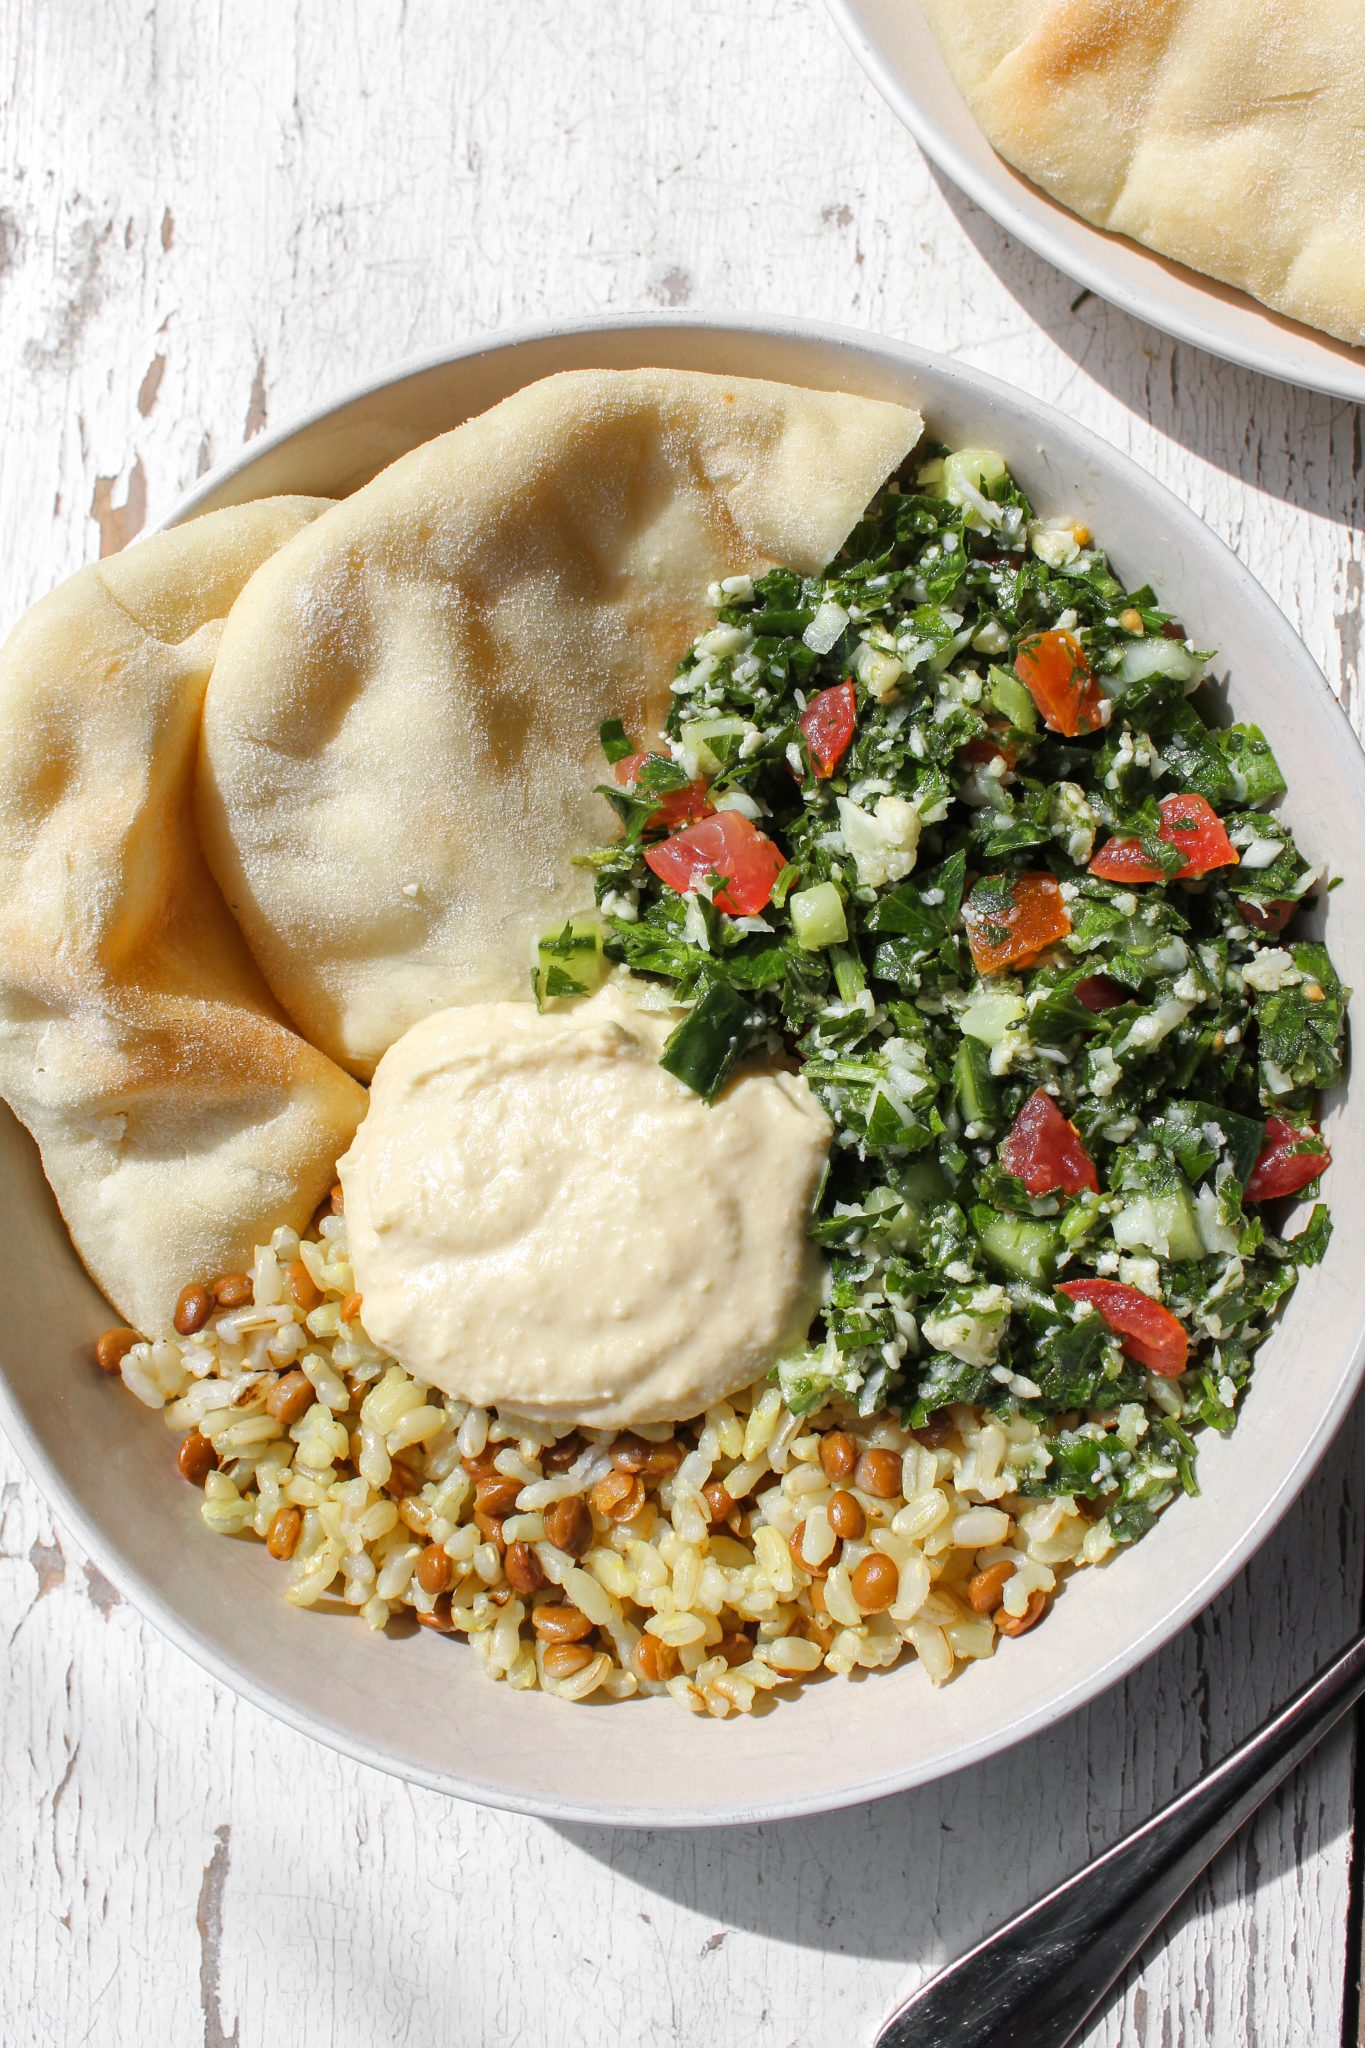 Cauliflower Tabbouleh Salad with Lentil Rice, Pita and Hummus.